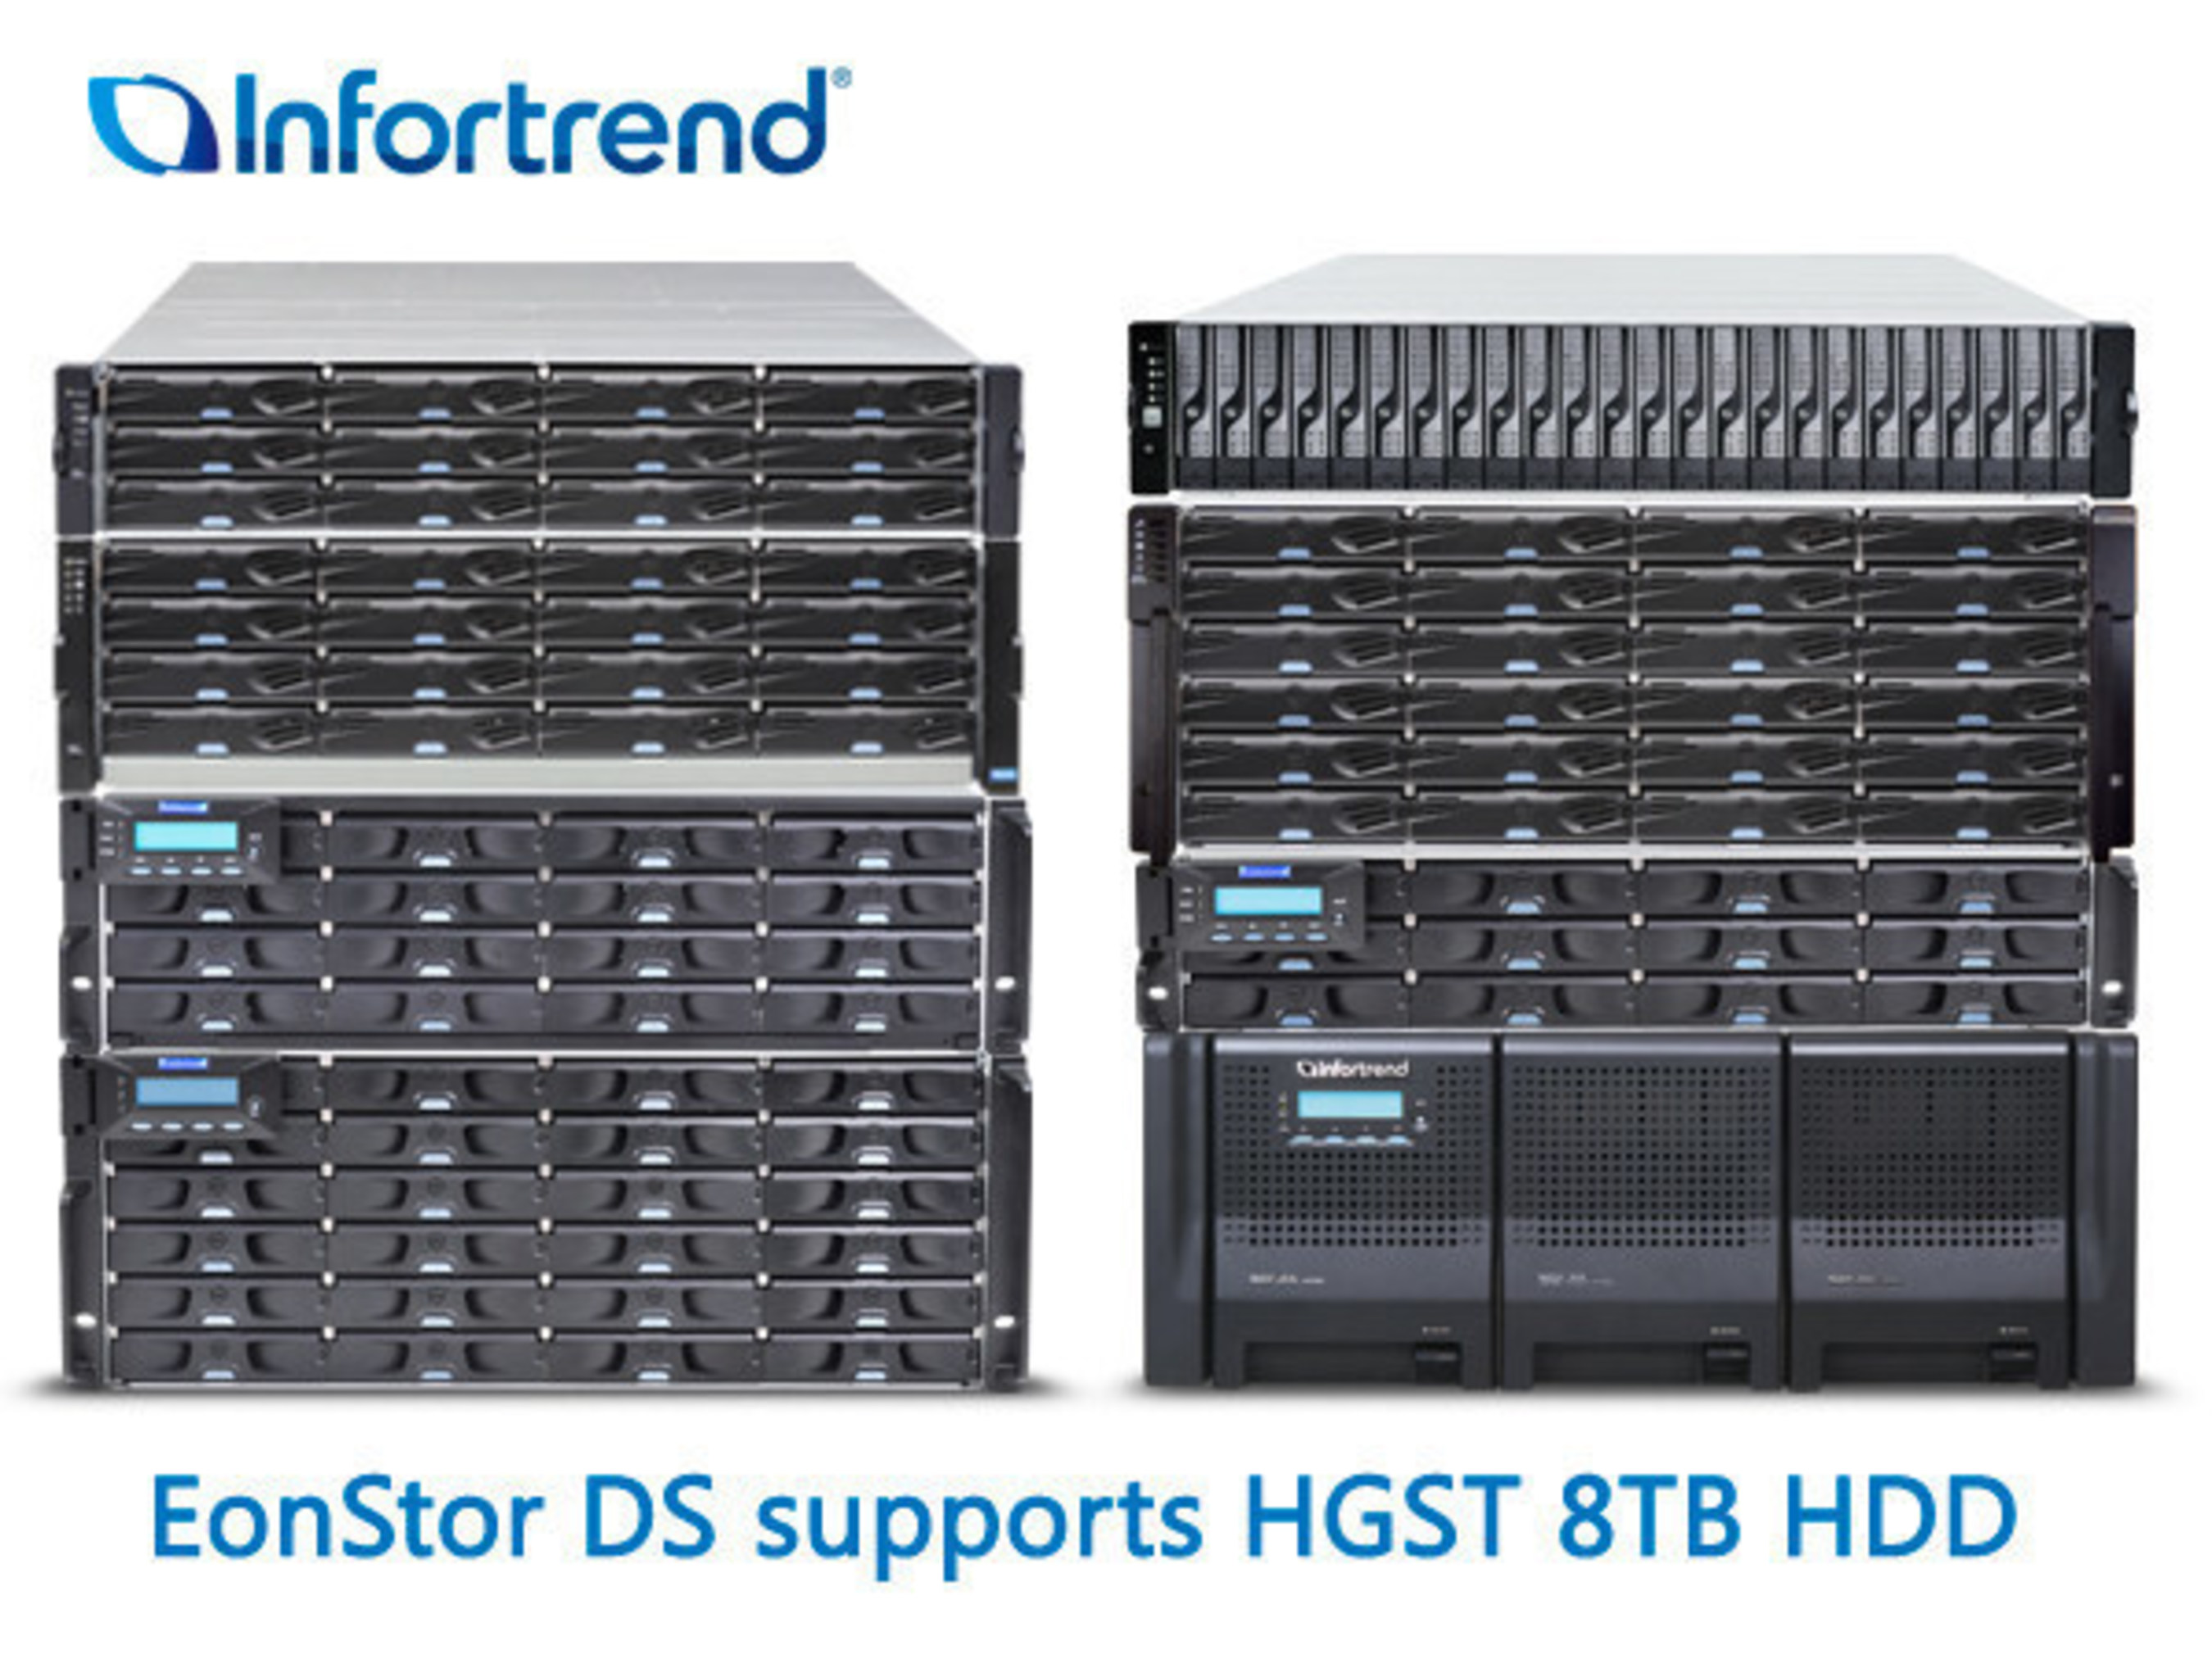 Infortrend EonStor DS supports HGST 8TB HDD